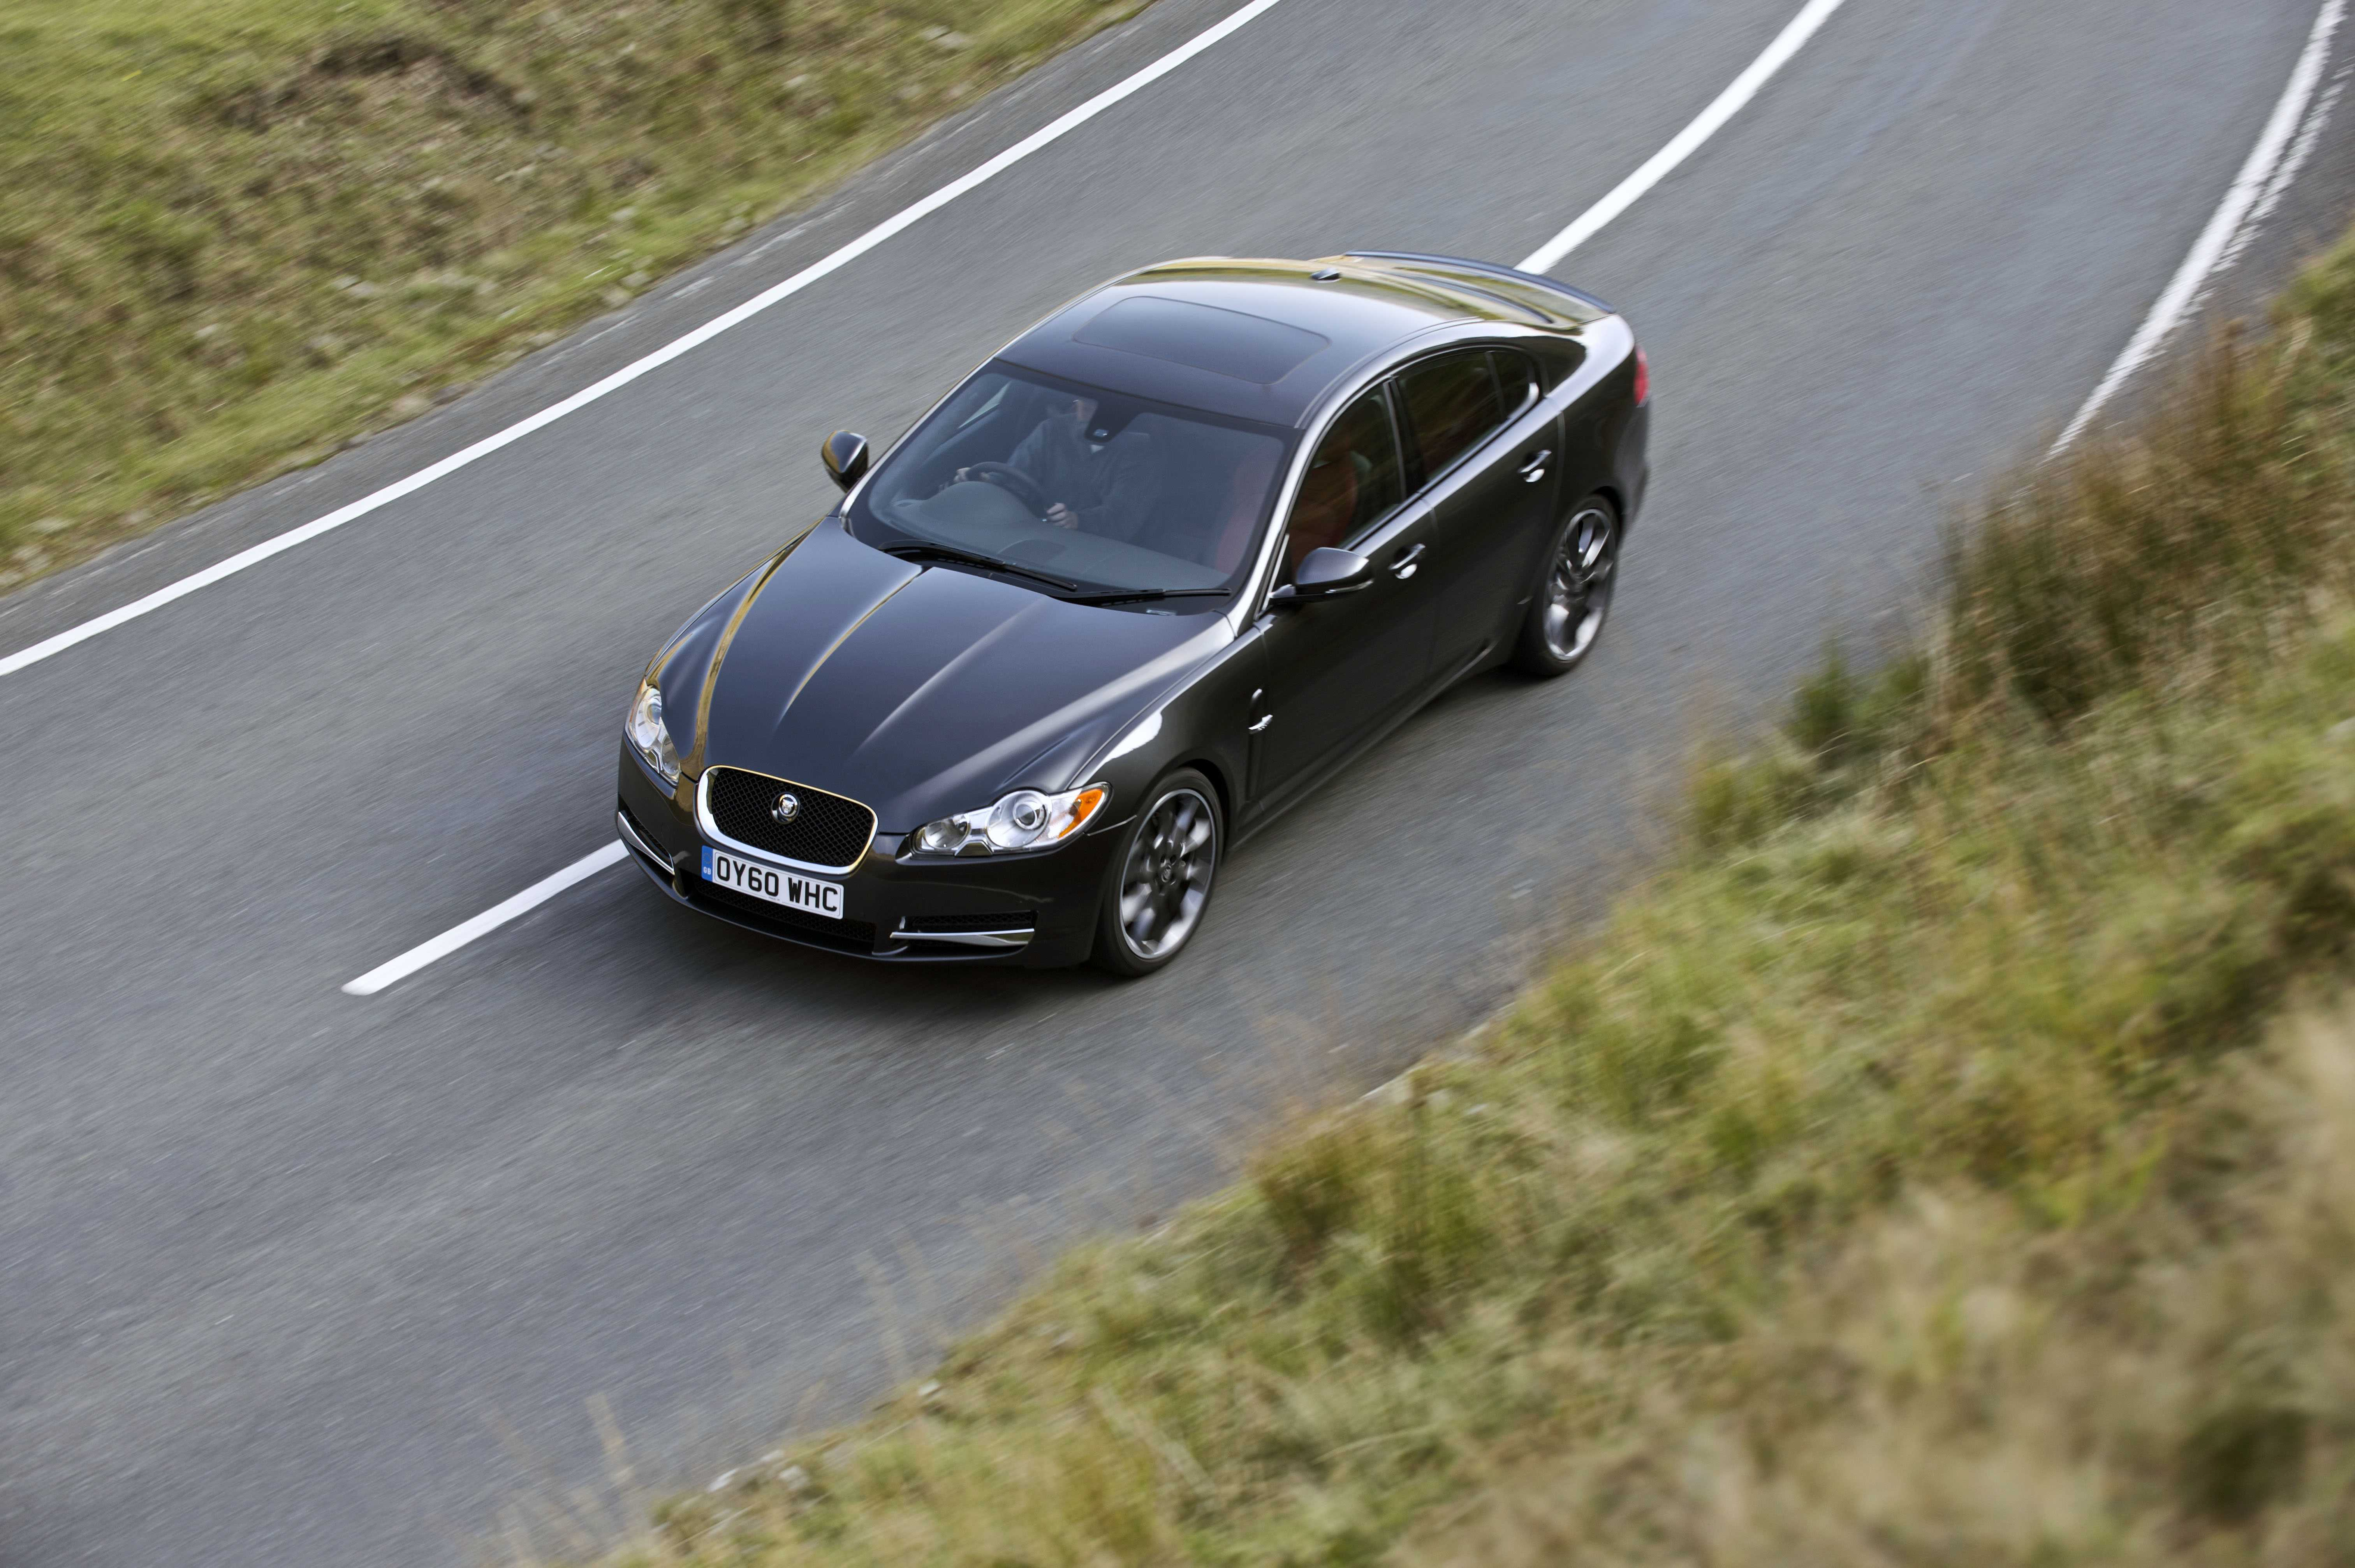 used xf bhp forum team jaguar ownership sale drives img initial supercharged for reports test